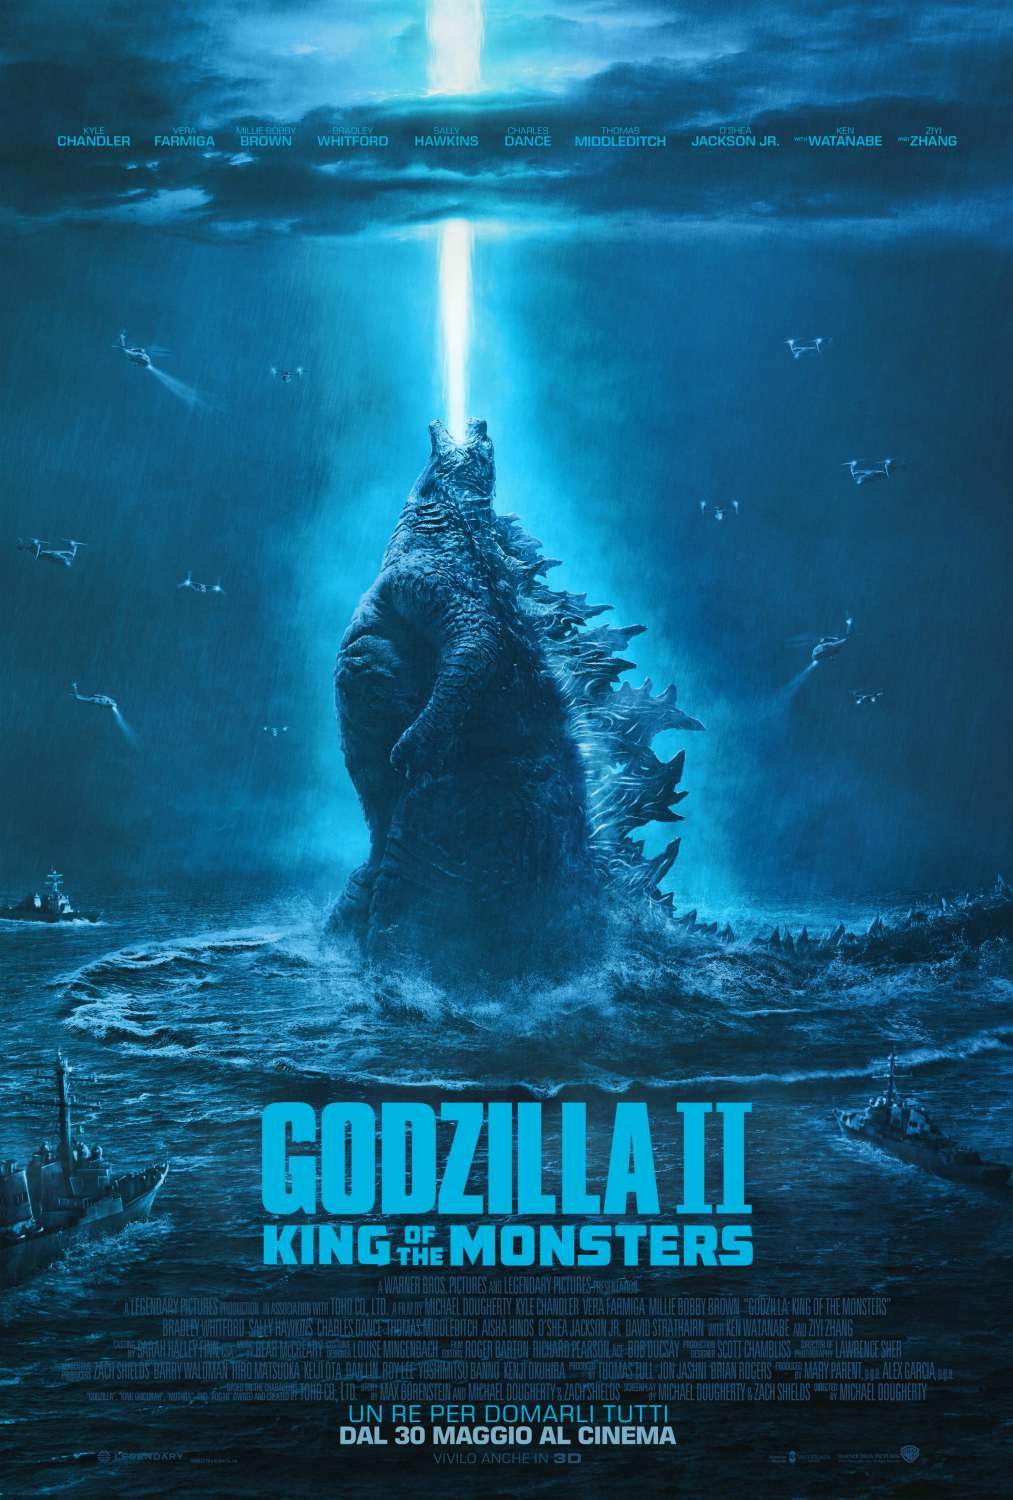 Godzilla 2 King of the Monsters (2019) モンスターのゴジラキング Official Full Movie Free Online